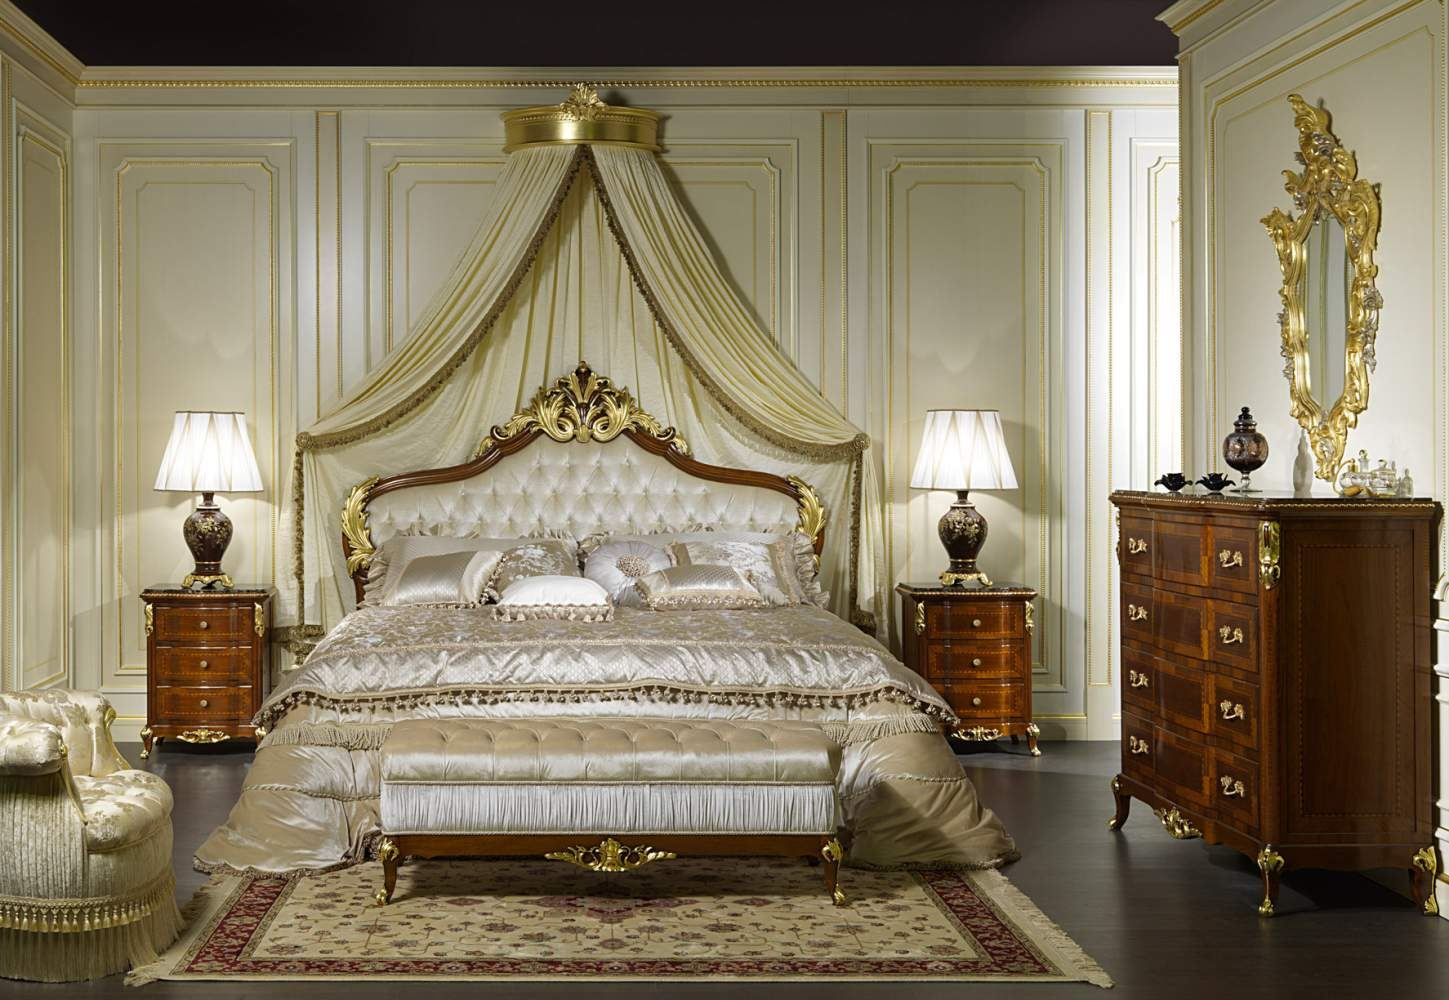 Furniture classic room Louis XV France